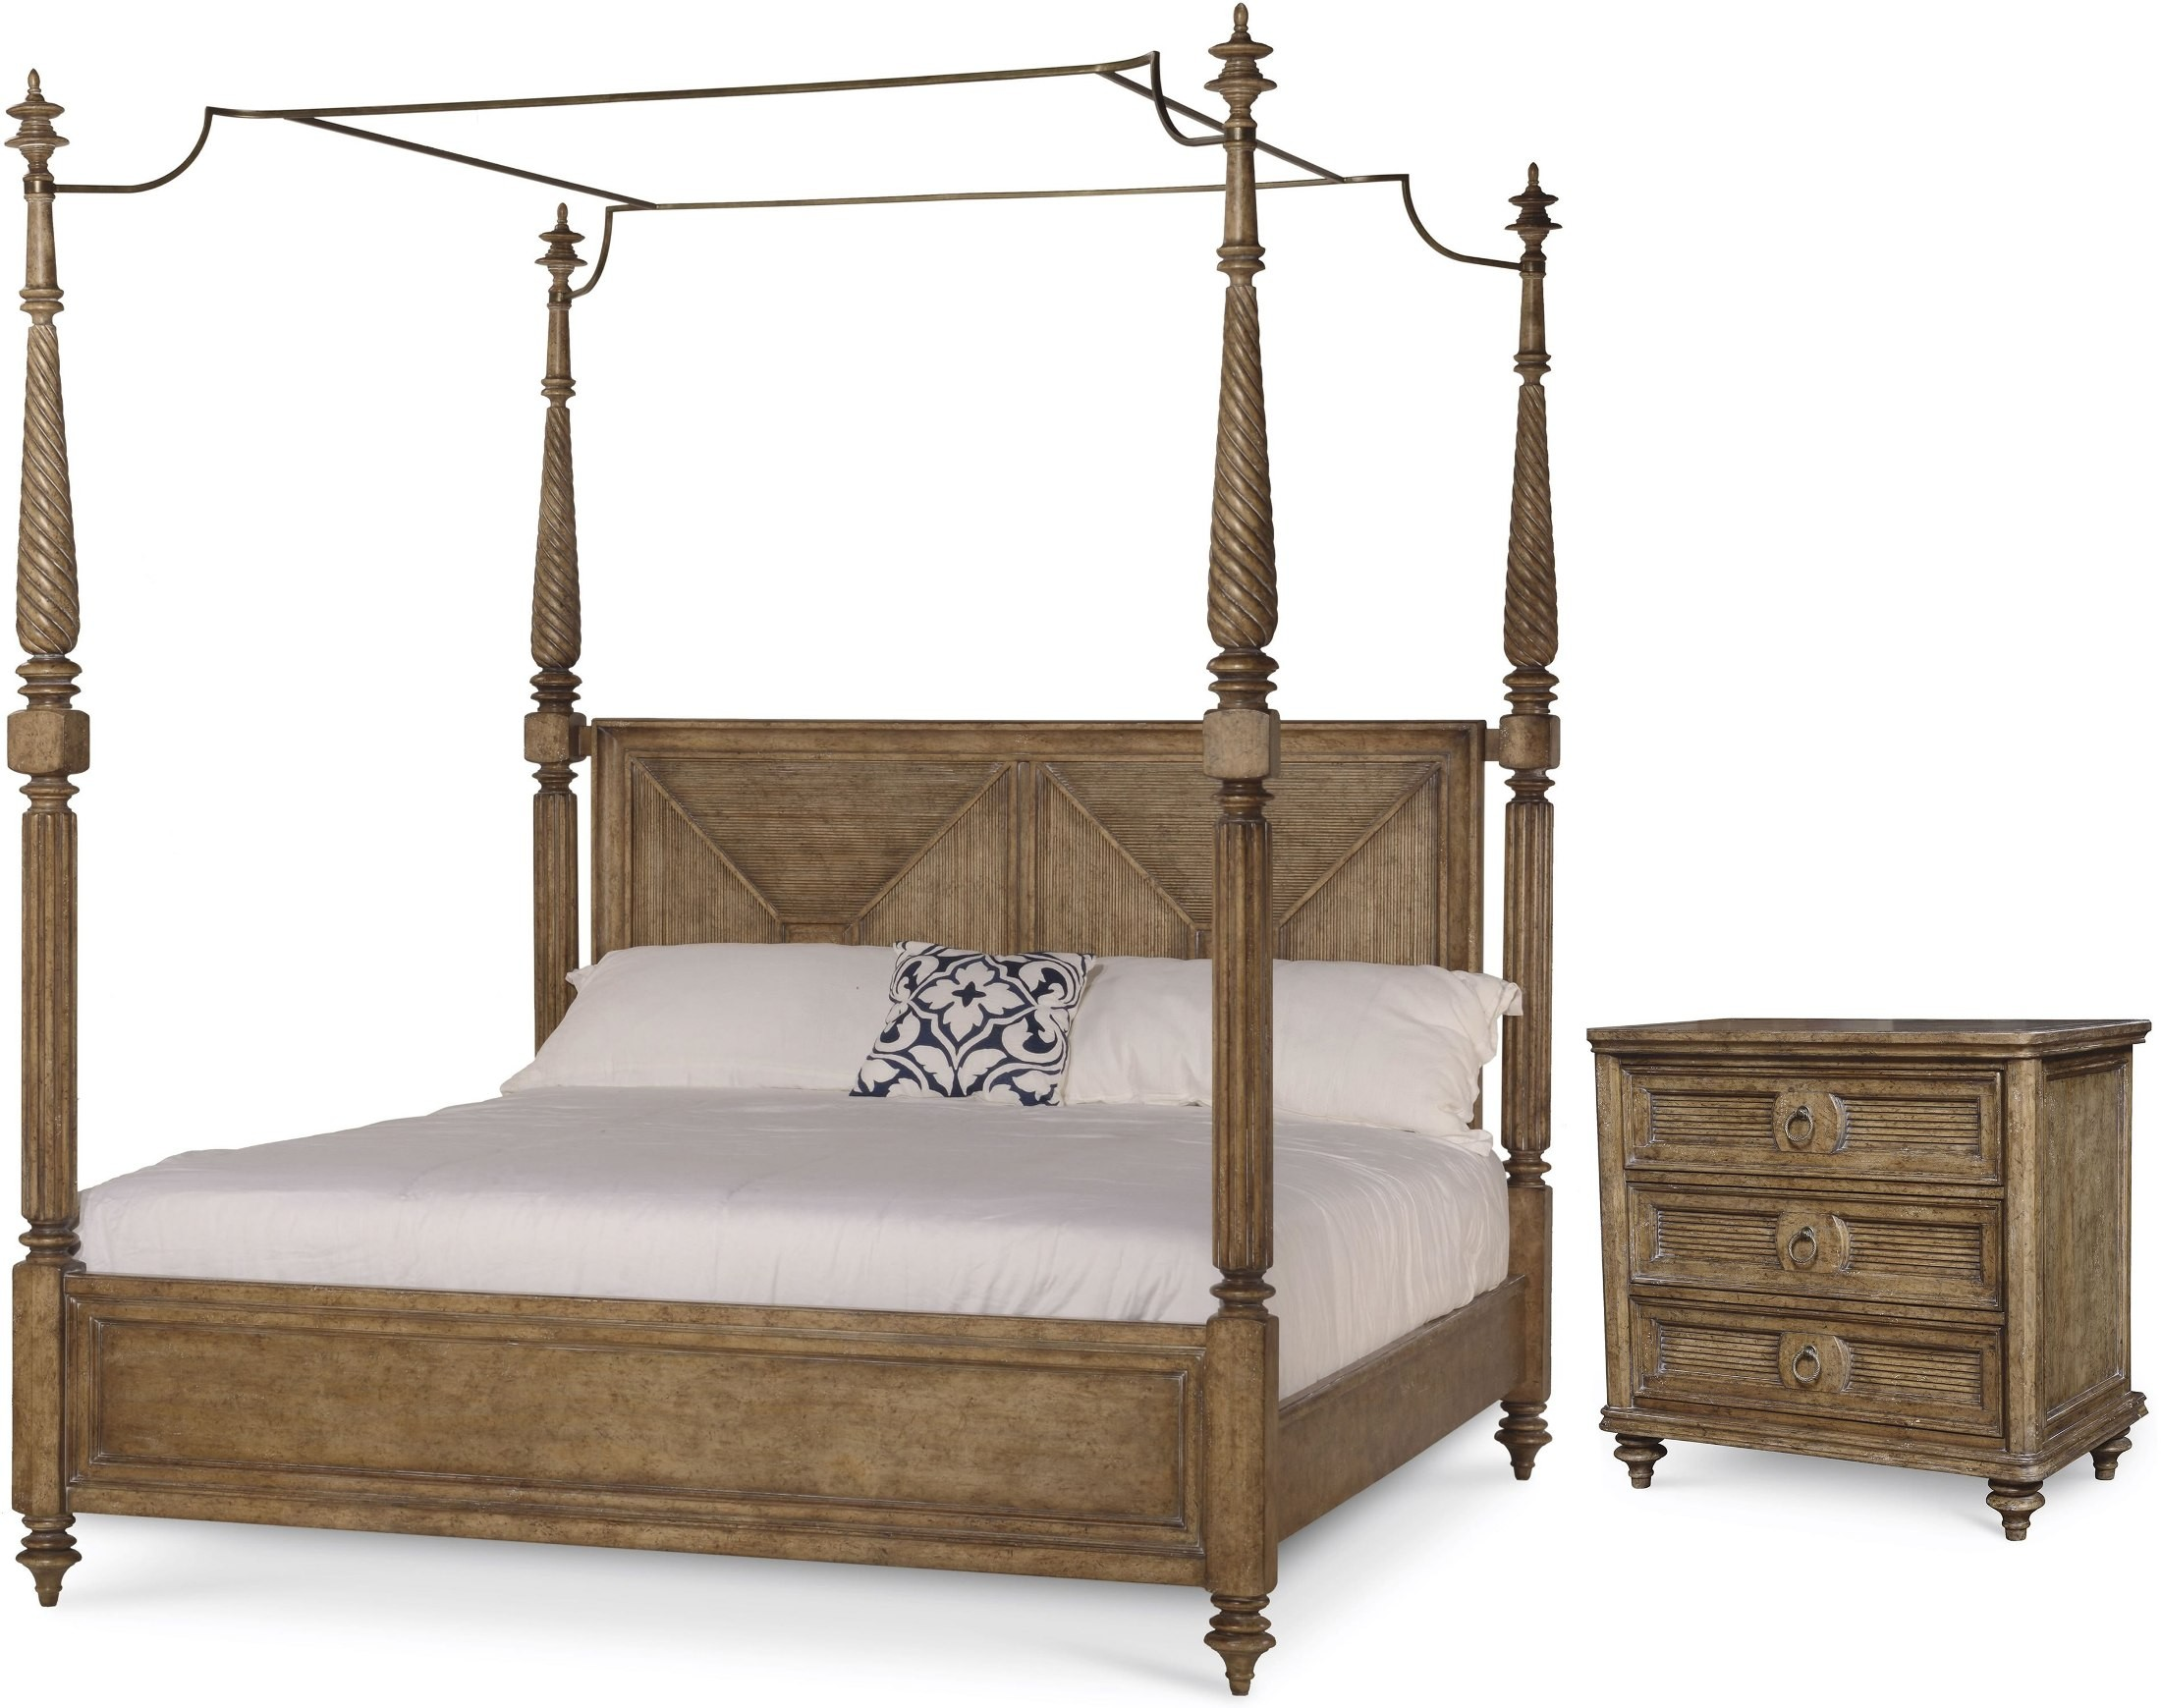 Pavilion Brown King Poster Bed With Canopy And Posts From